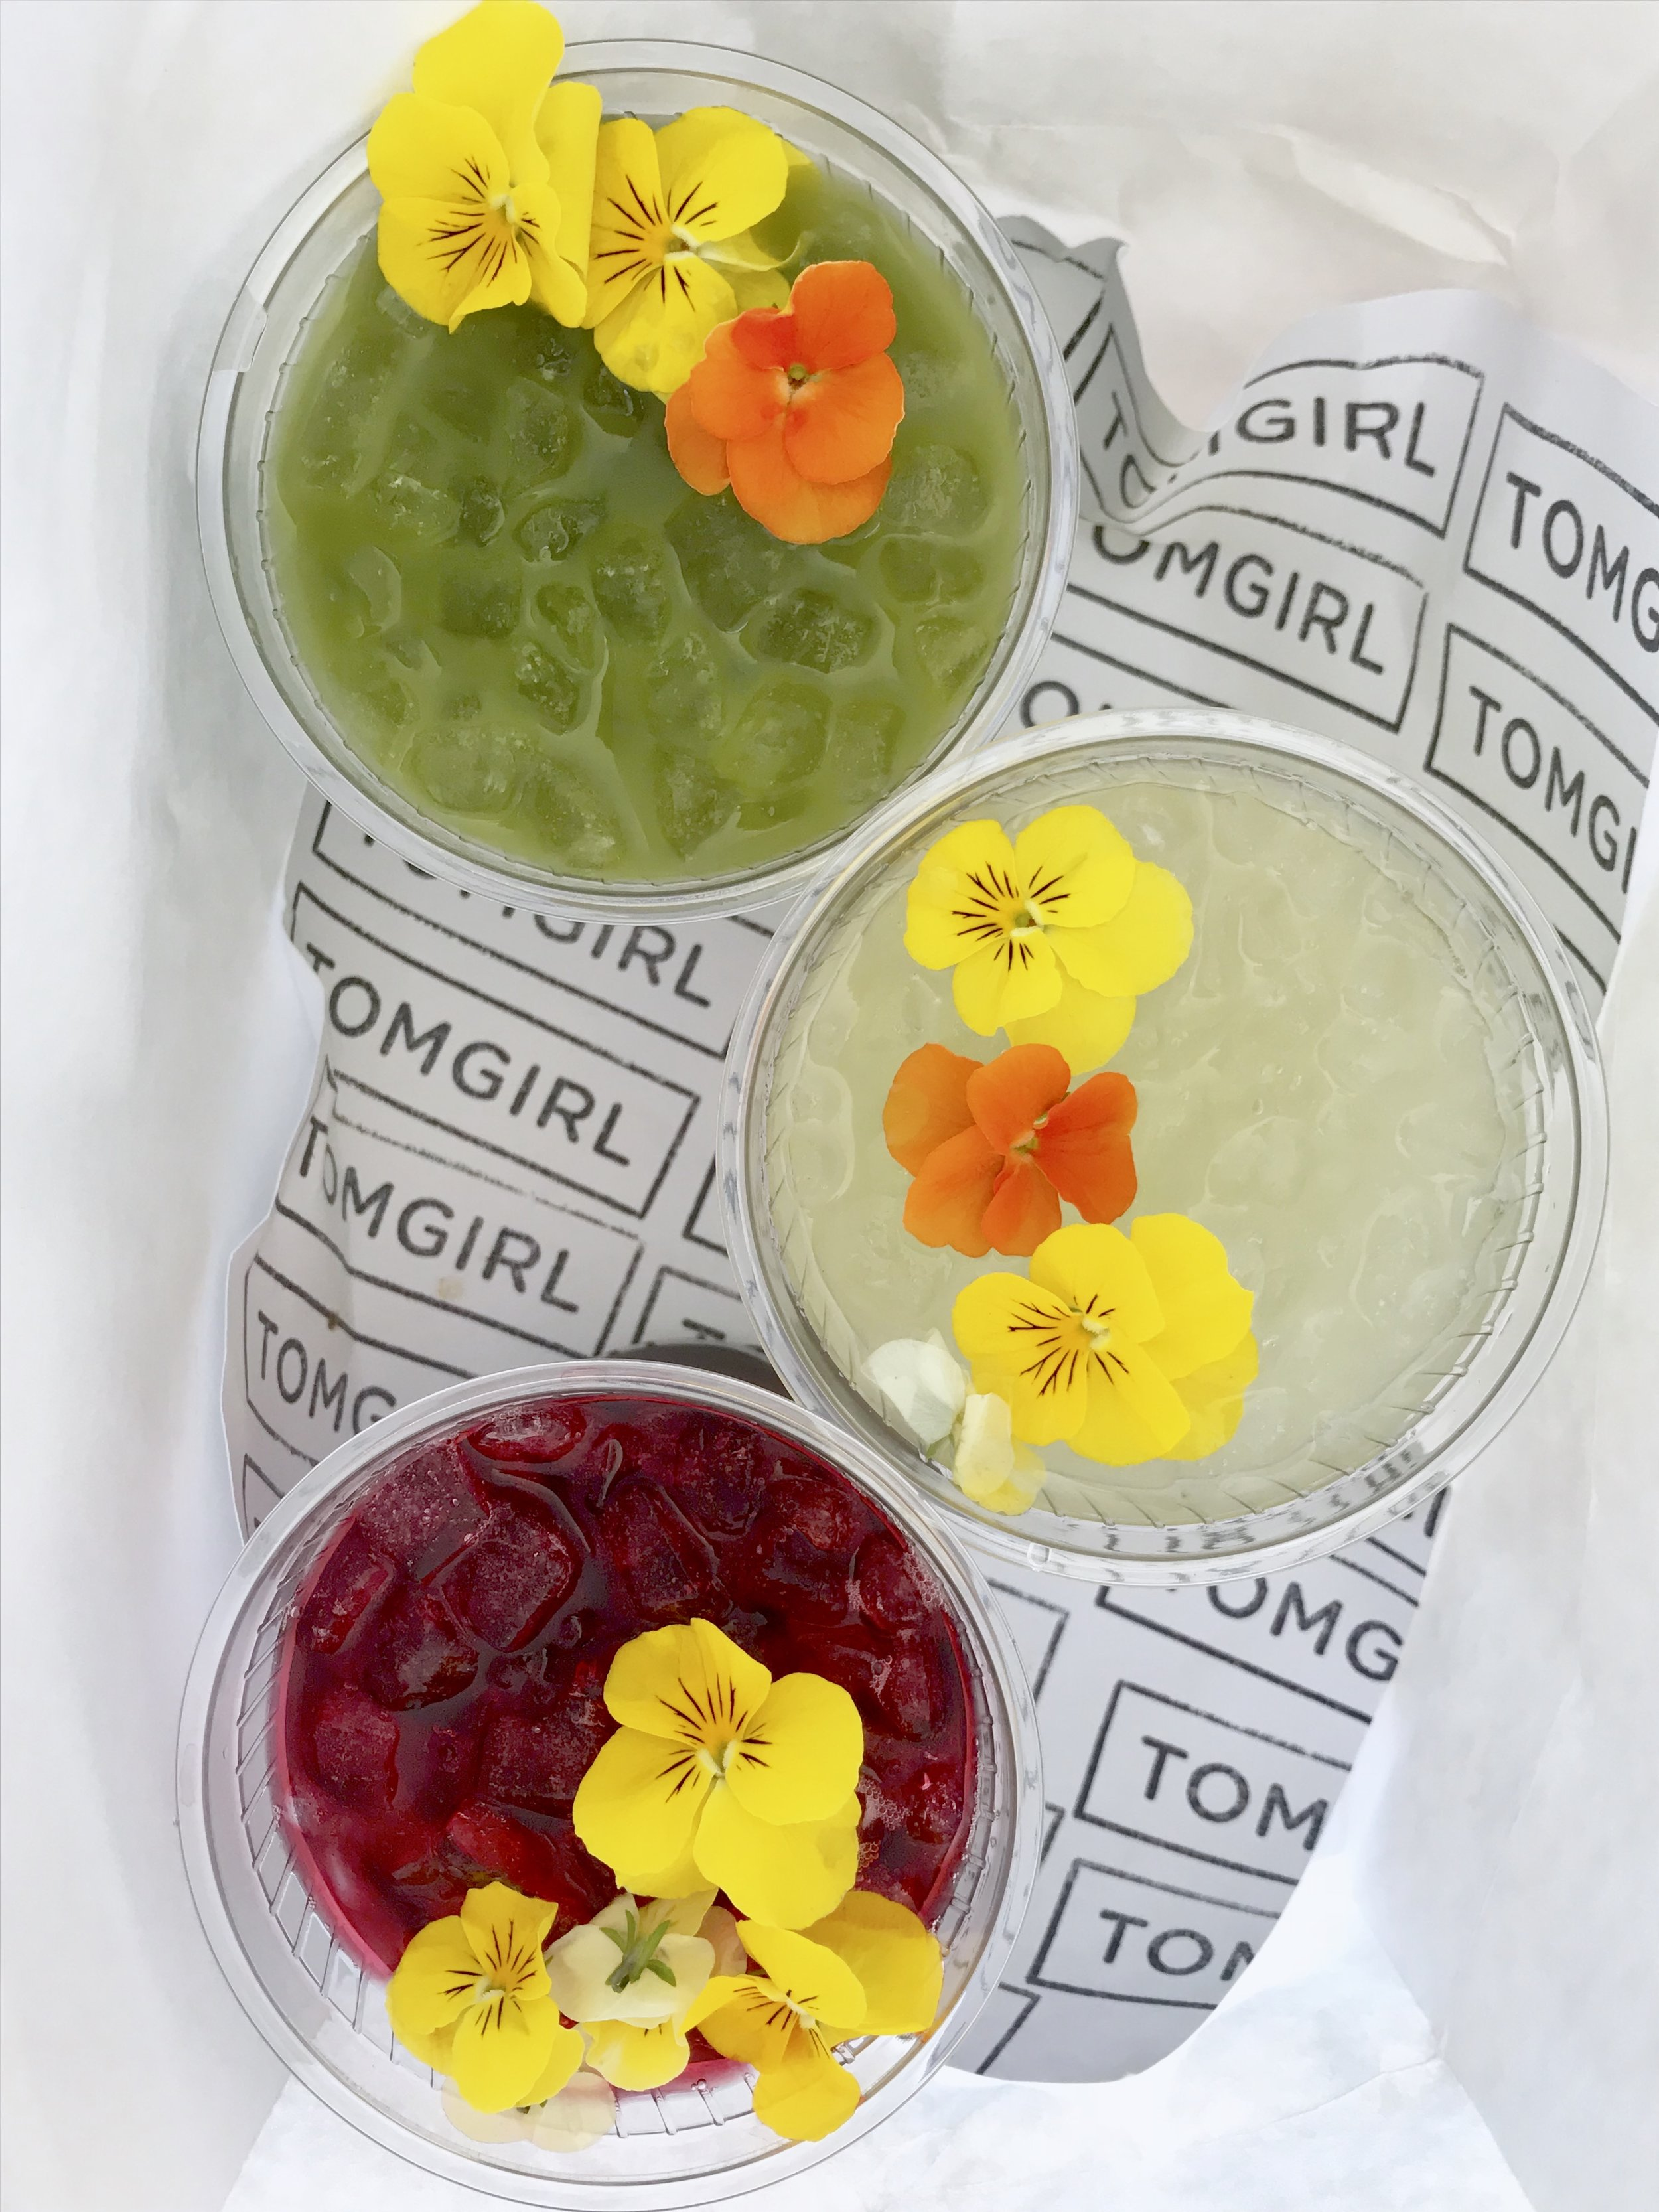 Aguas Frescas - Mindful hydration for total wellbeing